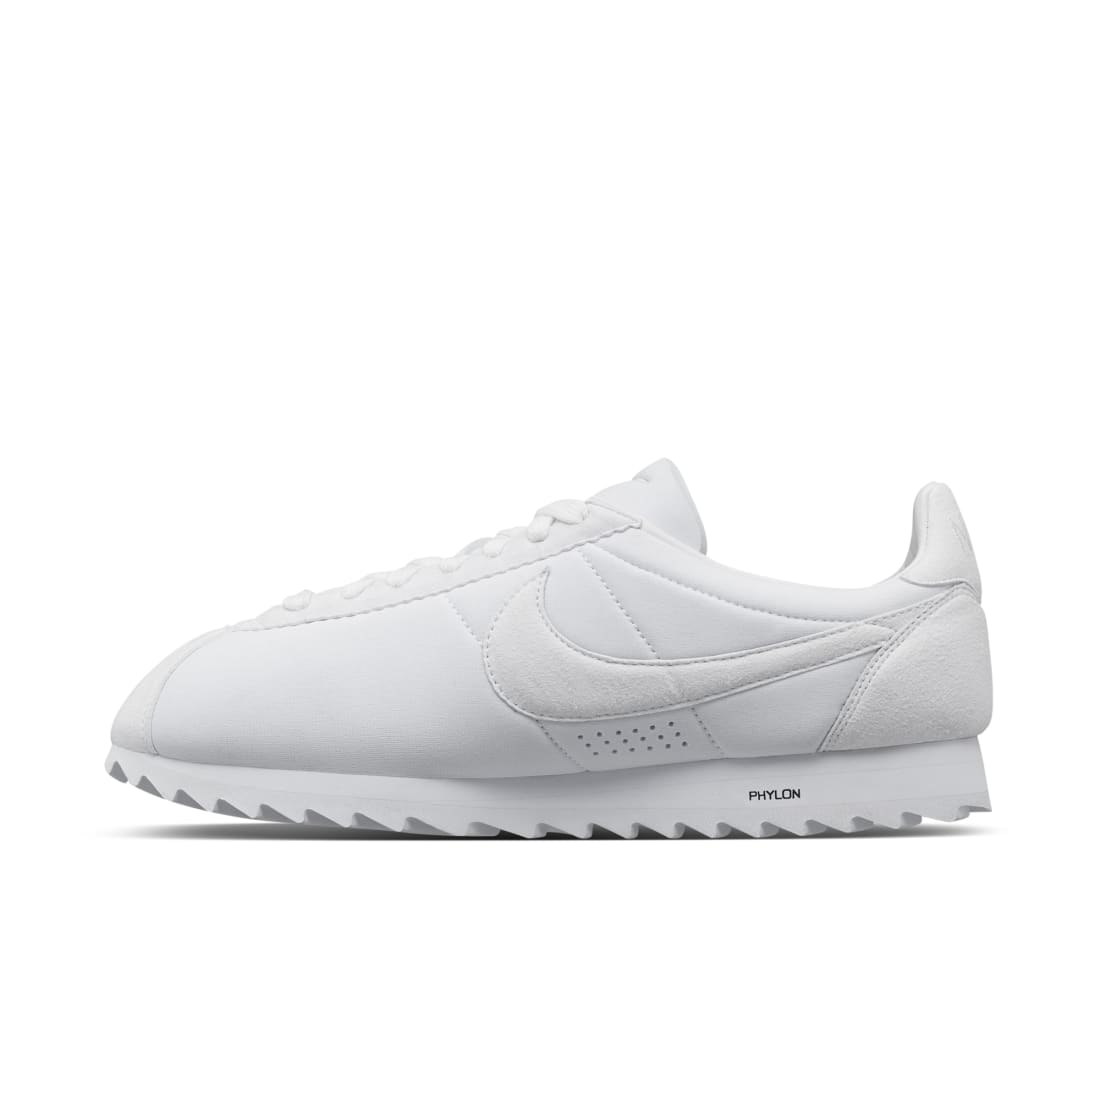 Nike Cortez Big Tooth White Showstopper (2015/2017)